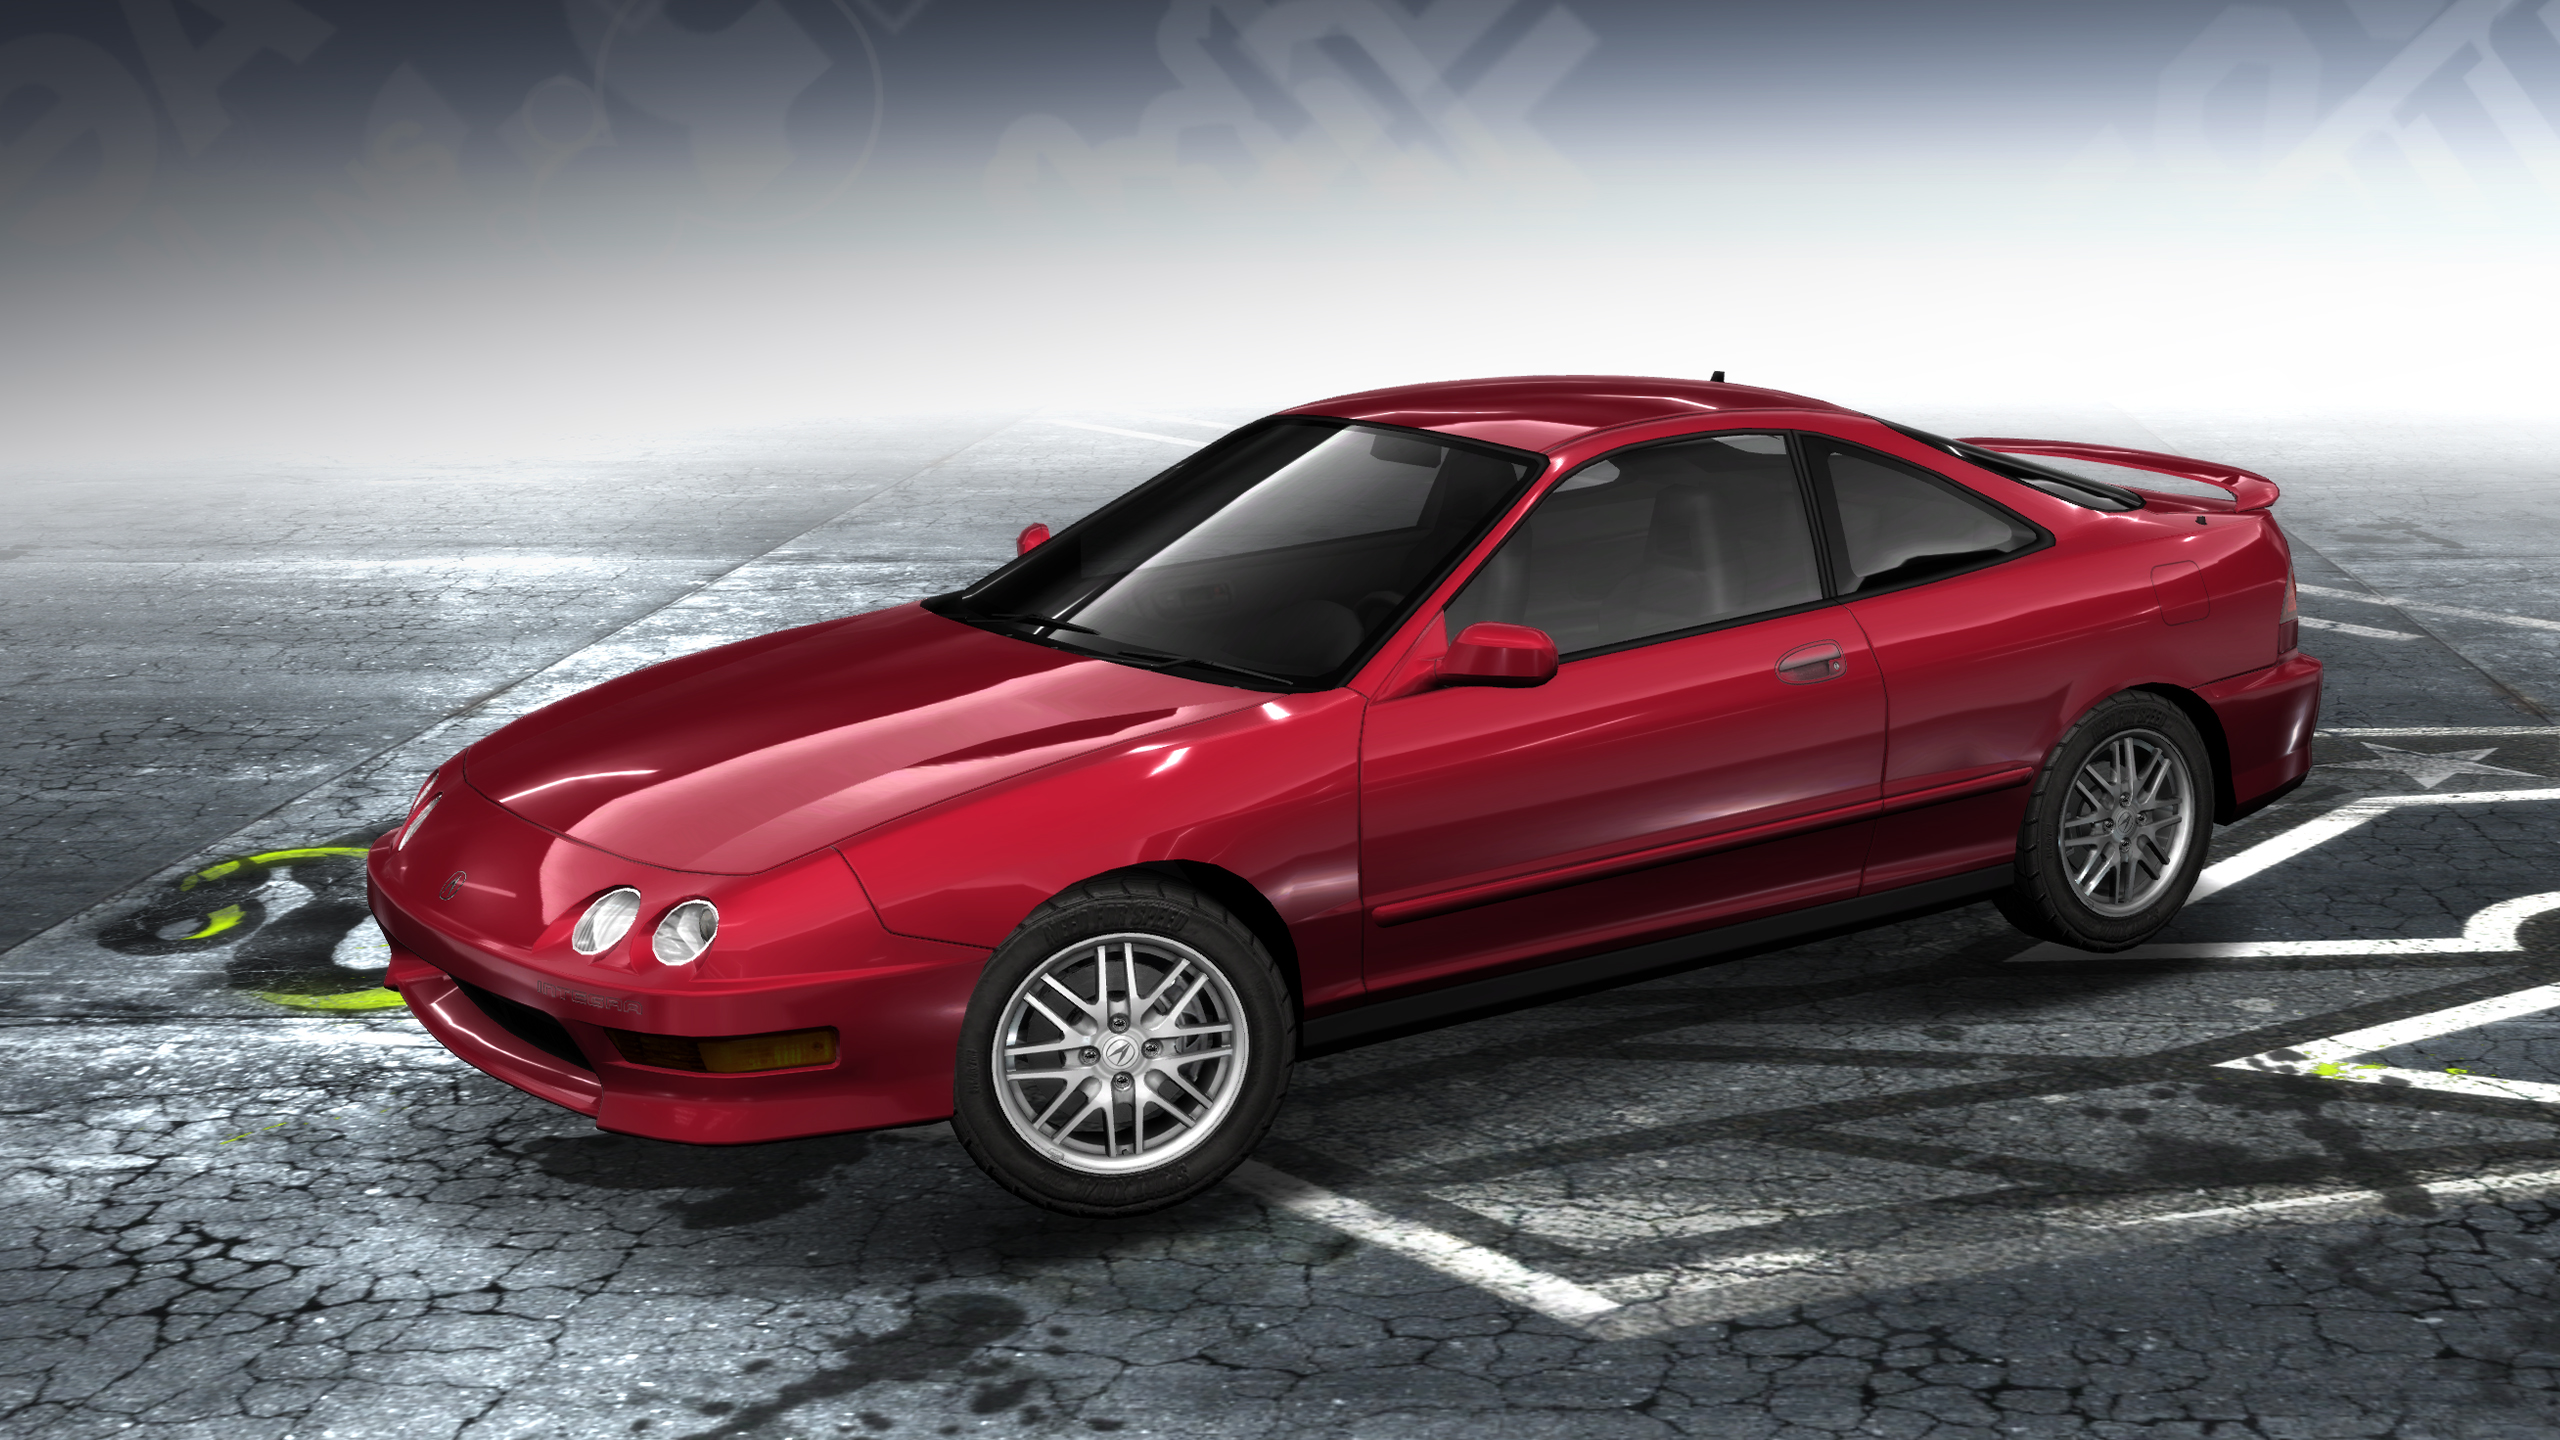 acura integra ls need for speed wiki fandom powered by. Black Bedroom Furniture Sets. Home Design Ideas